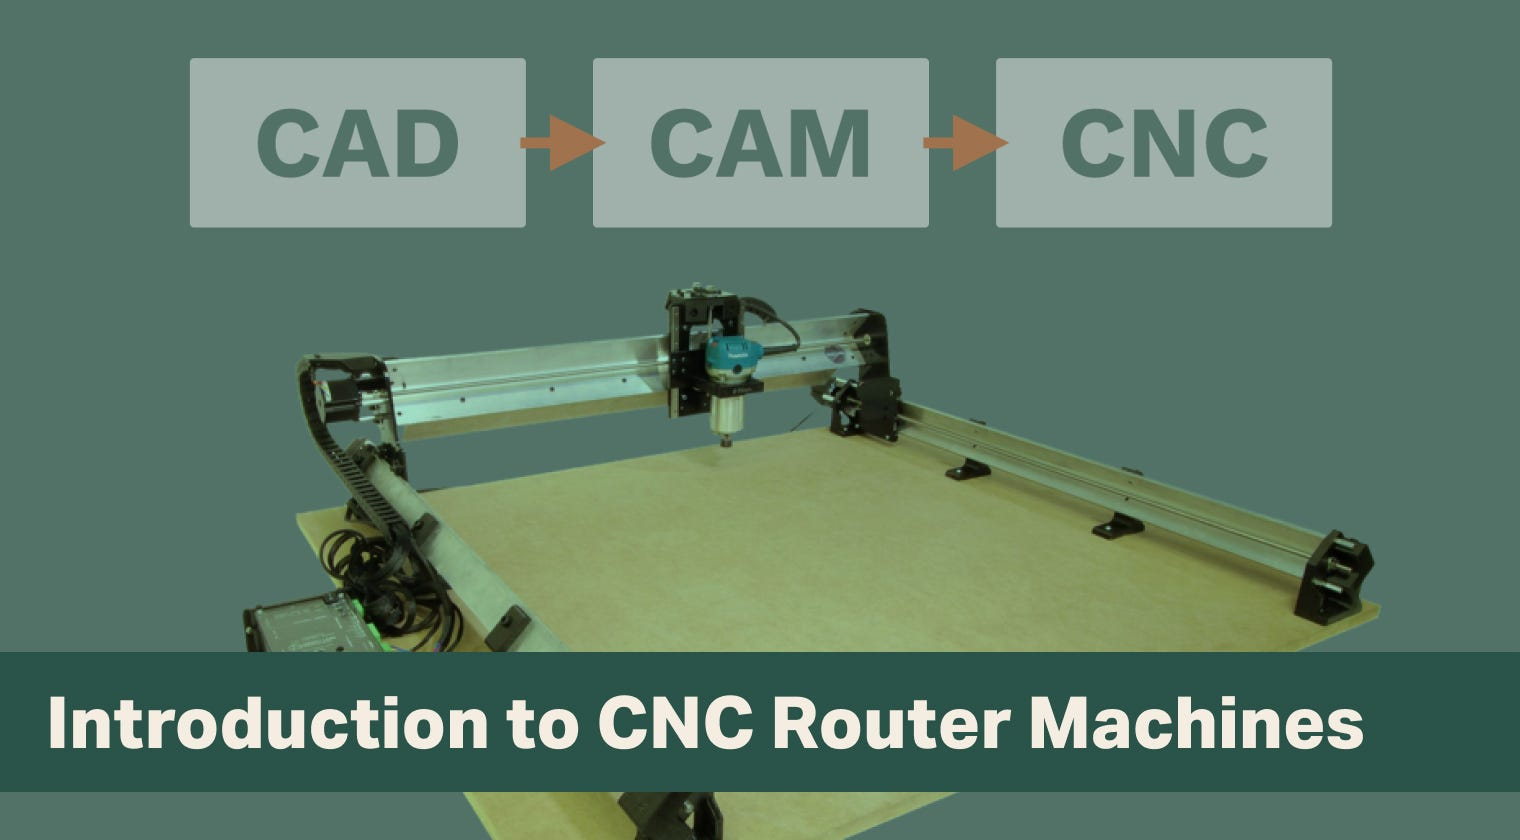 Introduction to CNC Router Machines